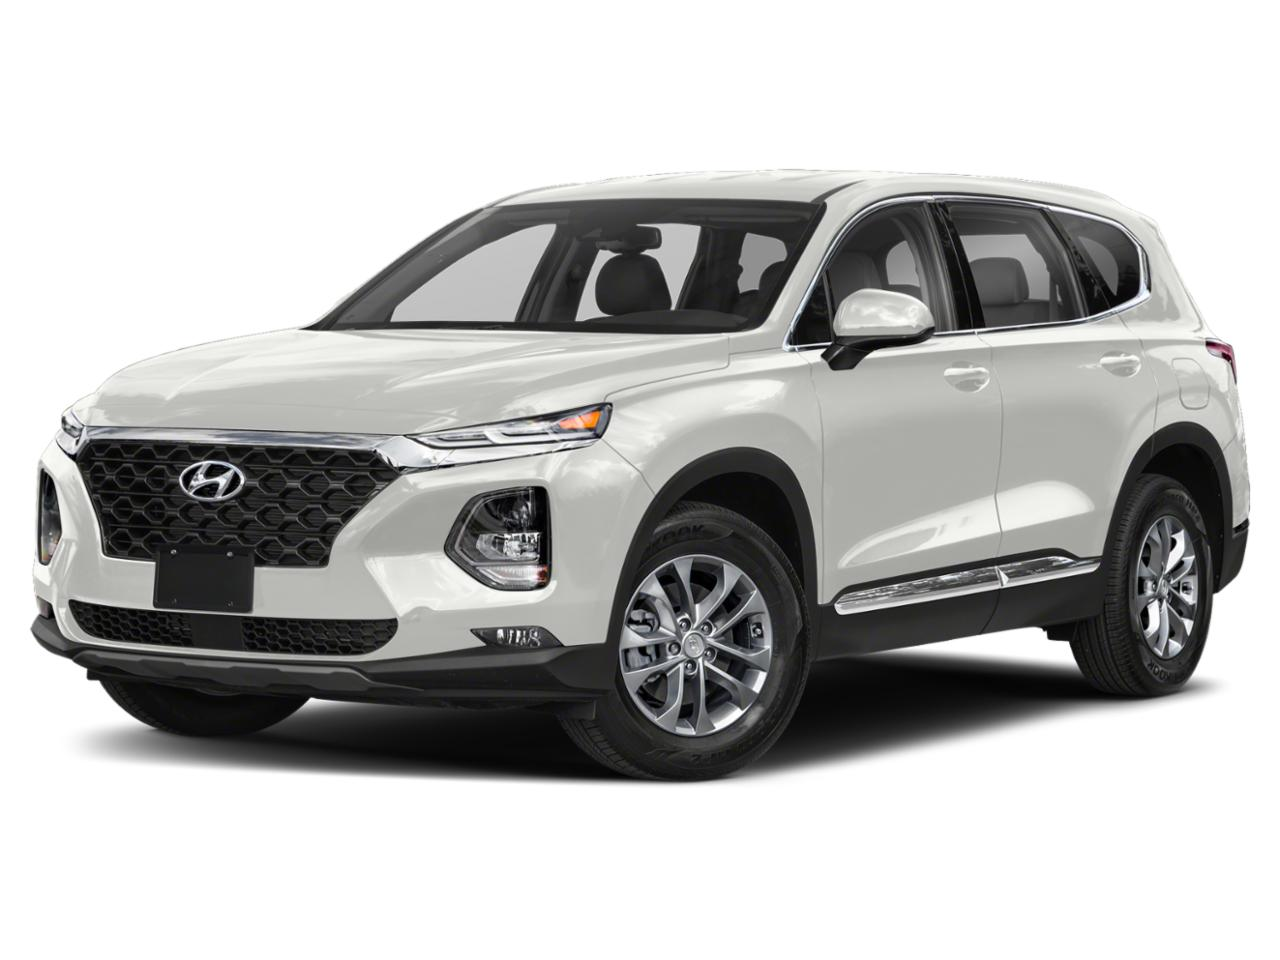 2020 Hyundai Santa Fe Vehicle Photo in Woodbridge, VA 22191